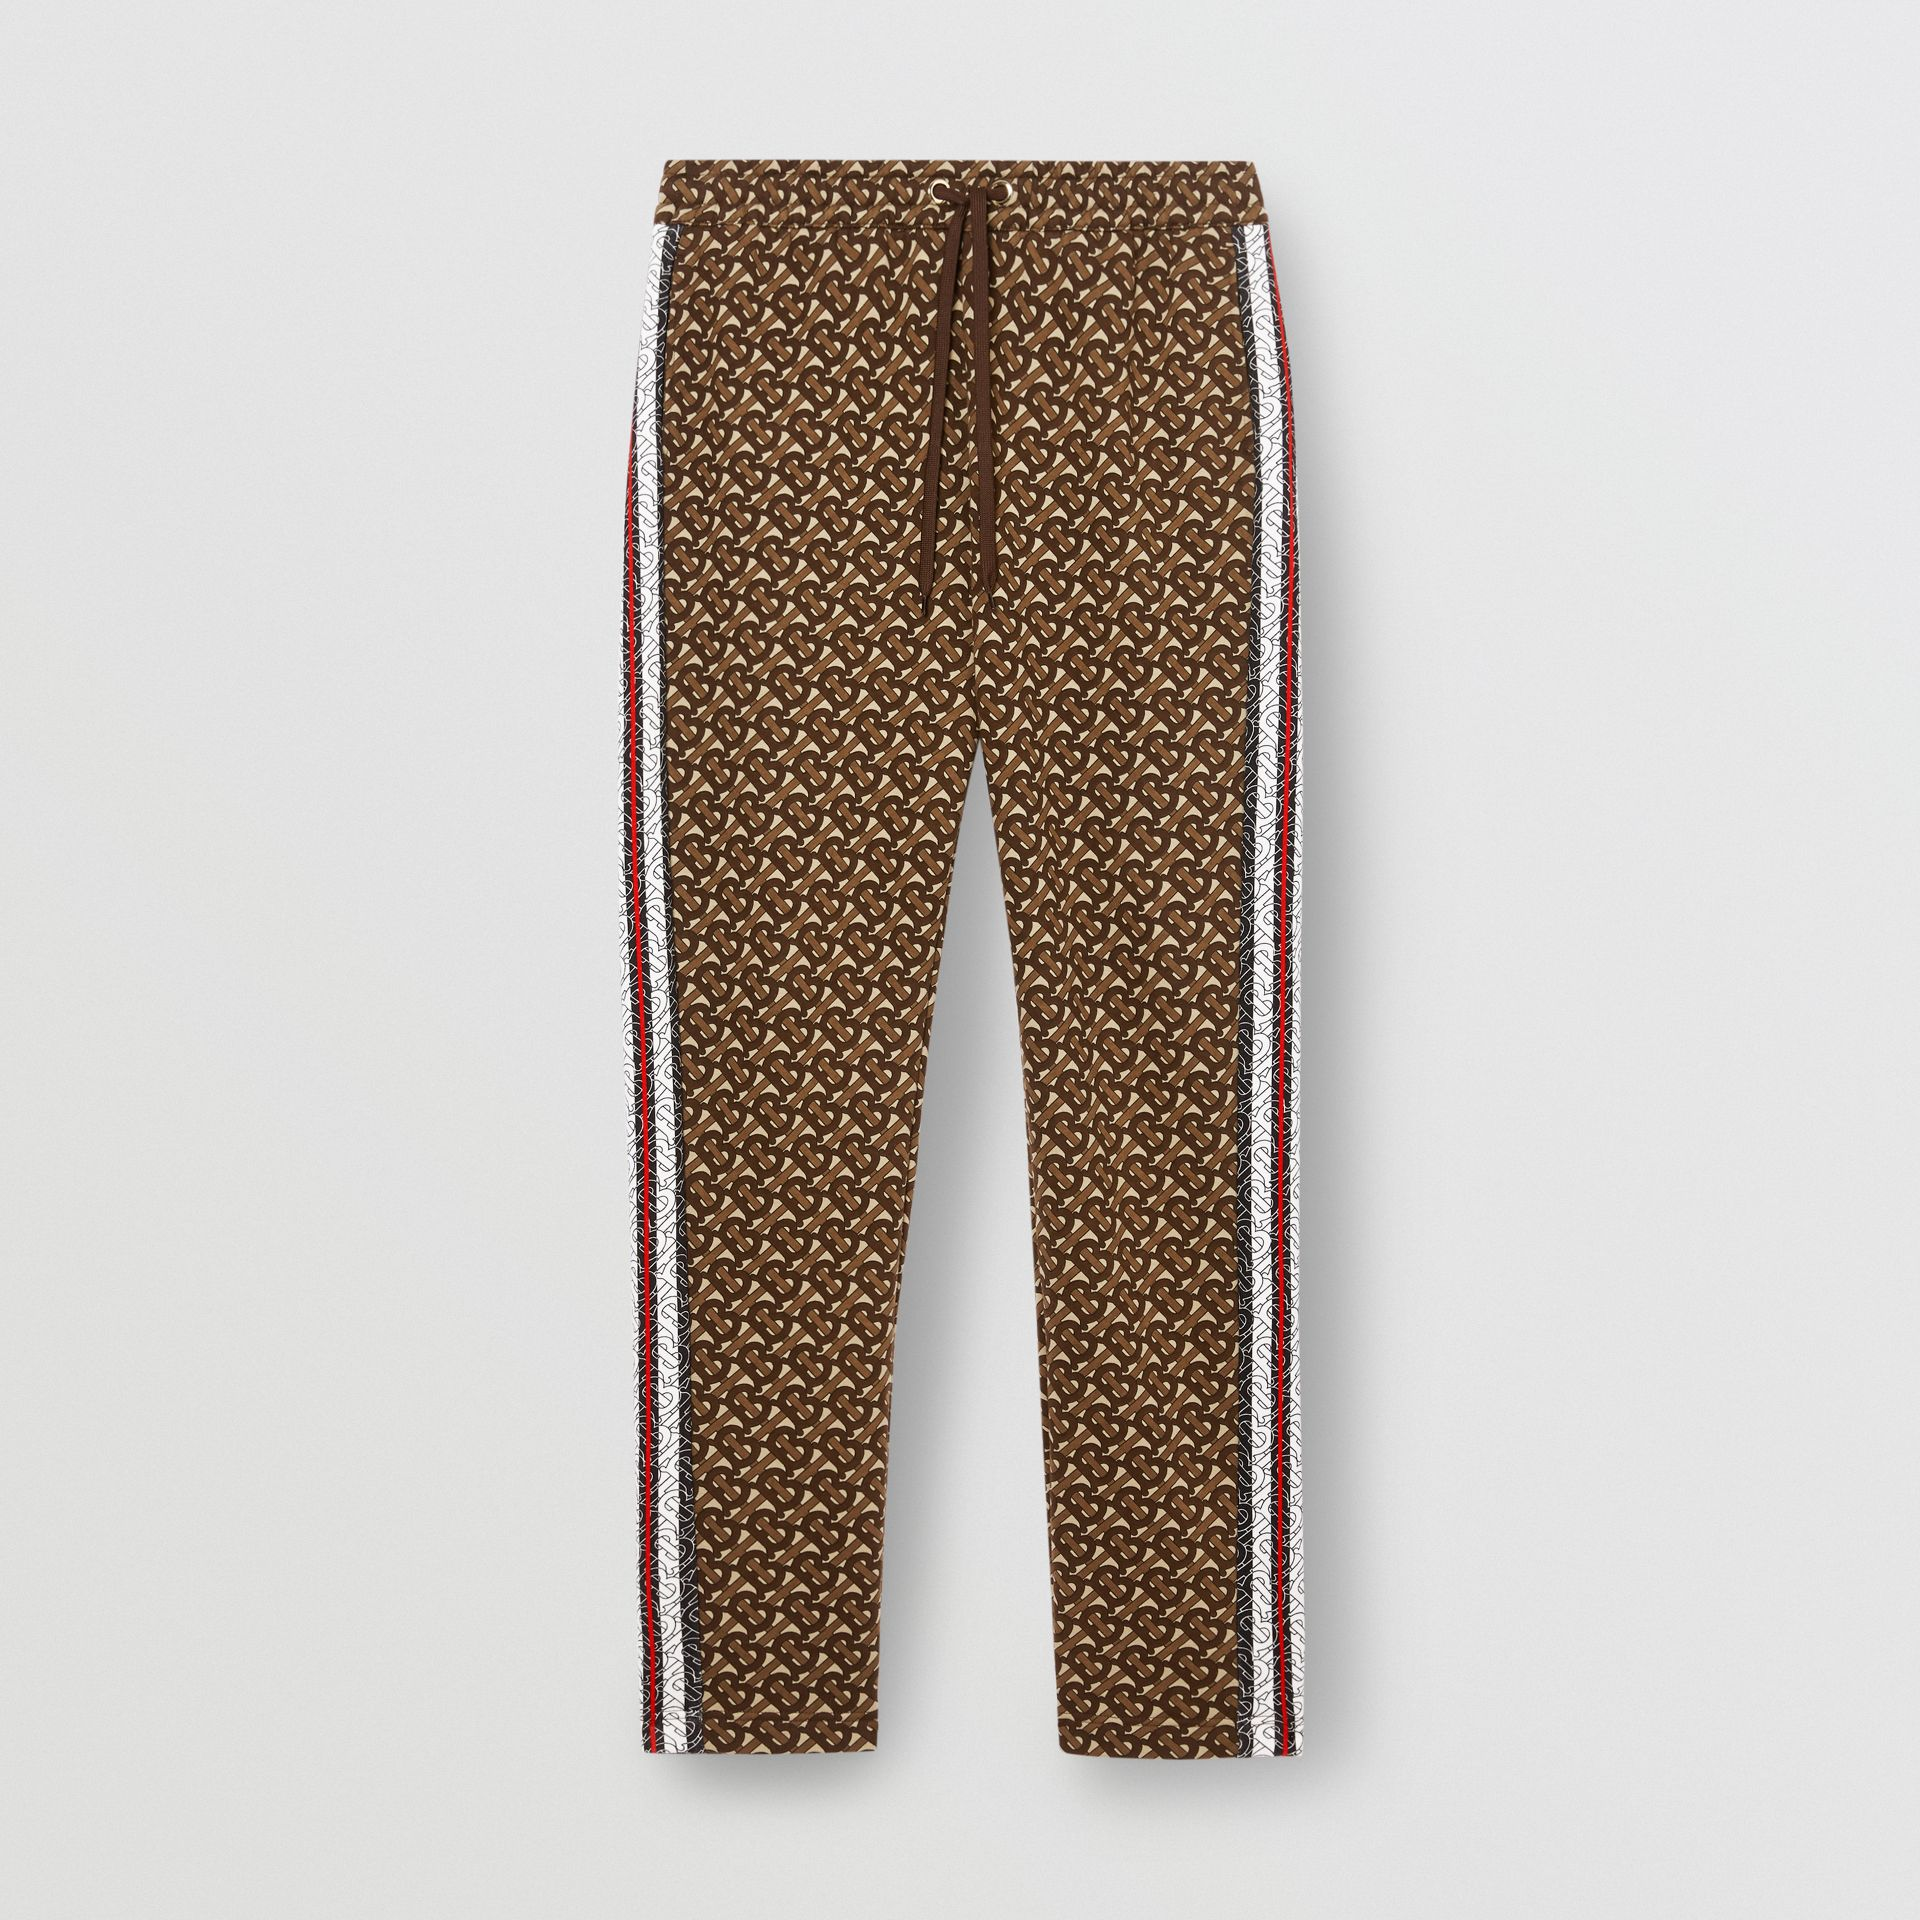 Monogram Stripe Print Cotton Trackpants in Bridle Brown - Men | Burberry - gallery image 3